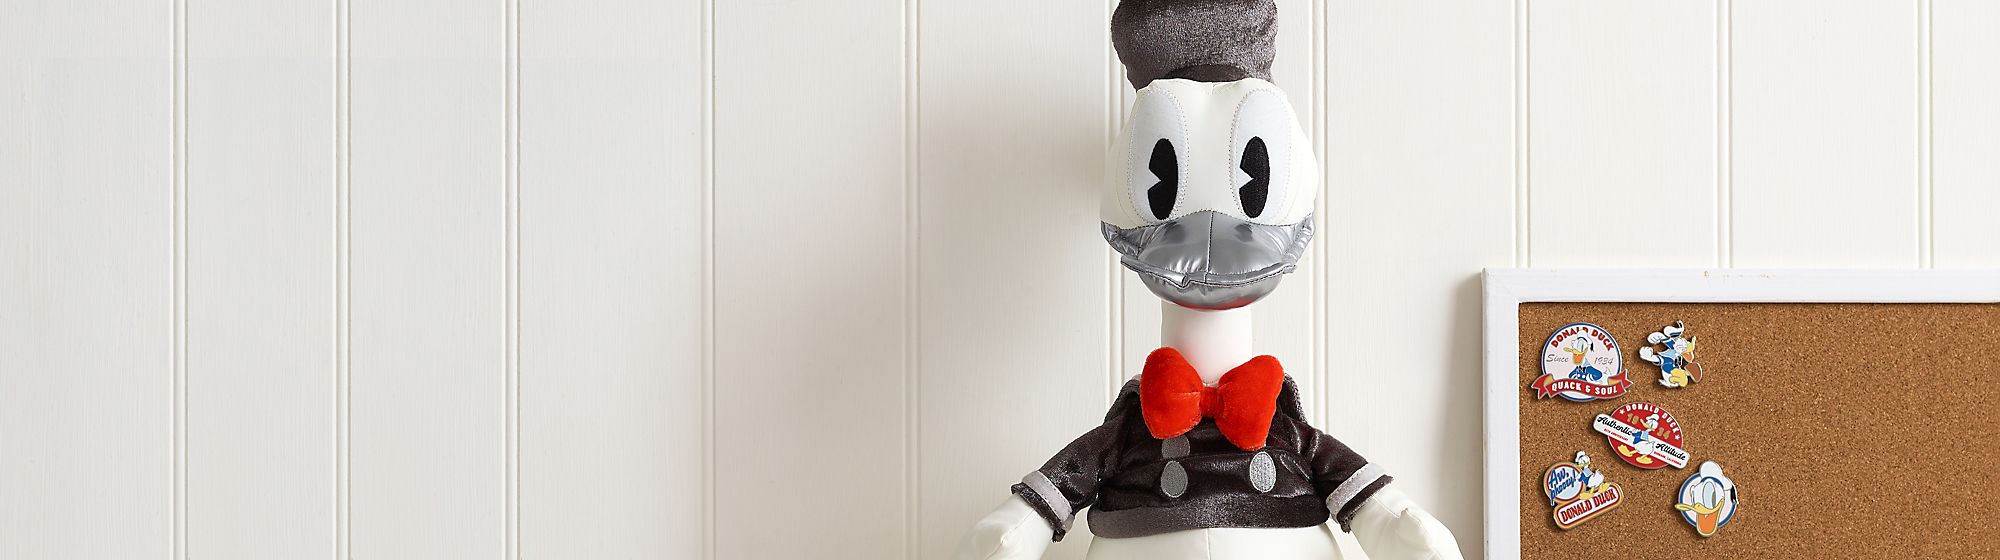 Celebrate Donald Duck's 85th Anniversary with our special edition collectible.